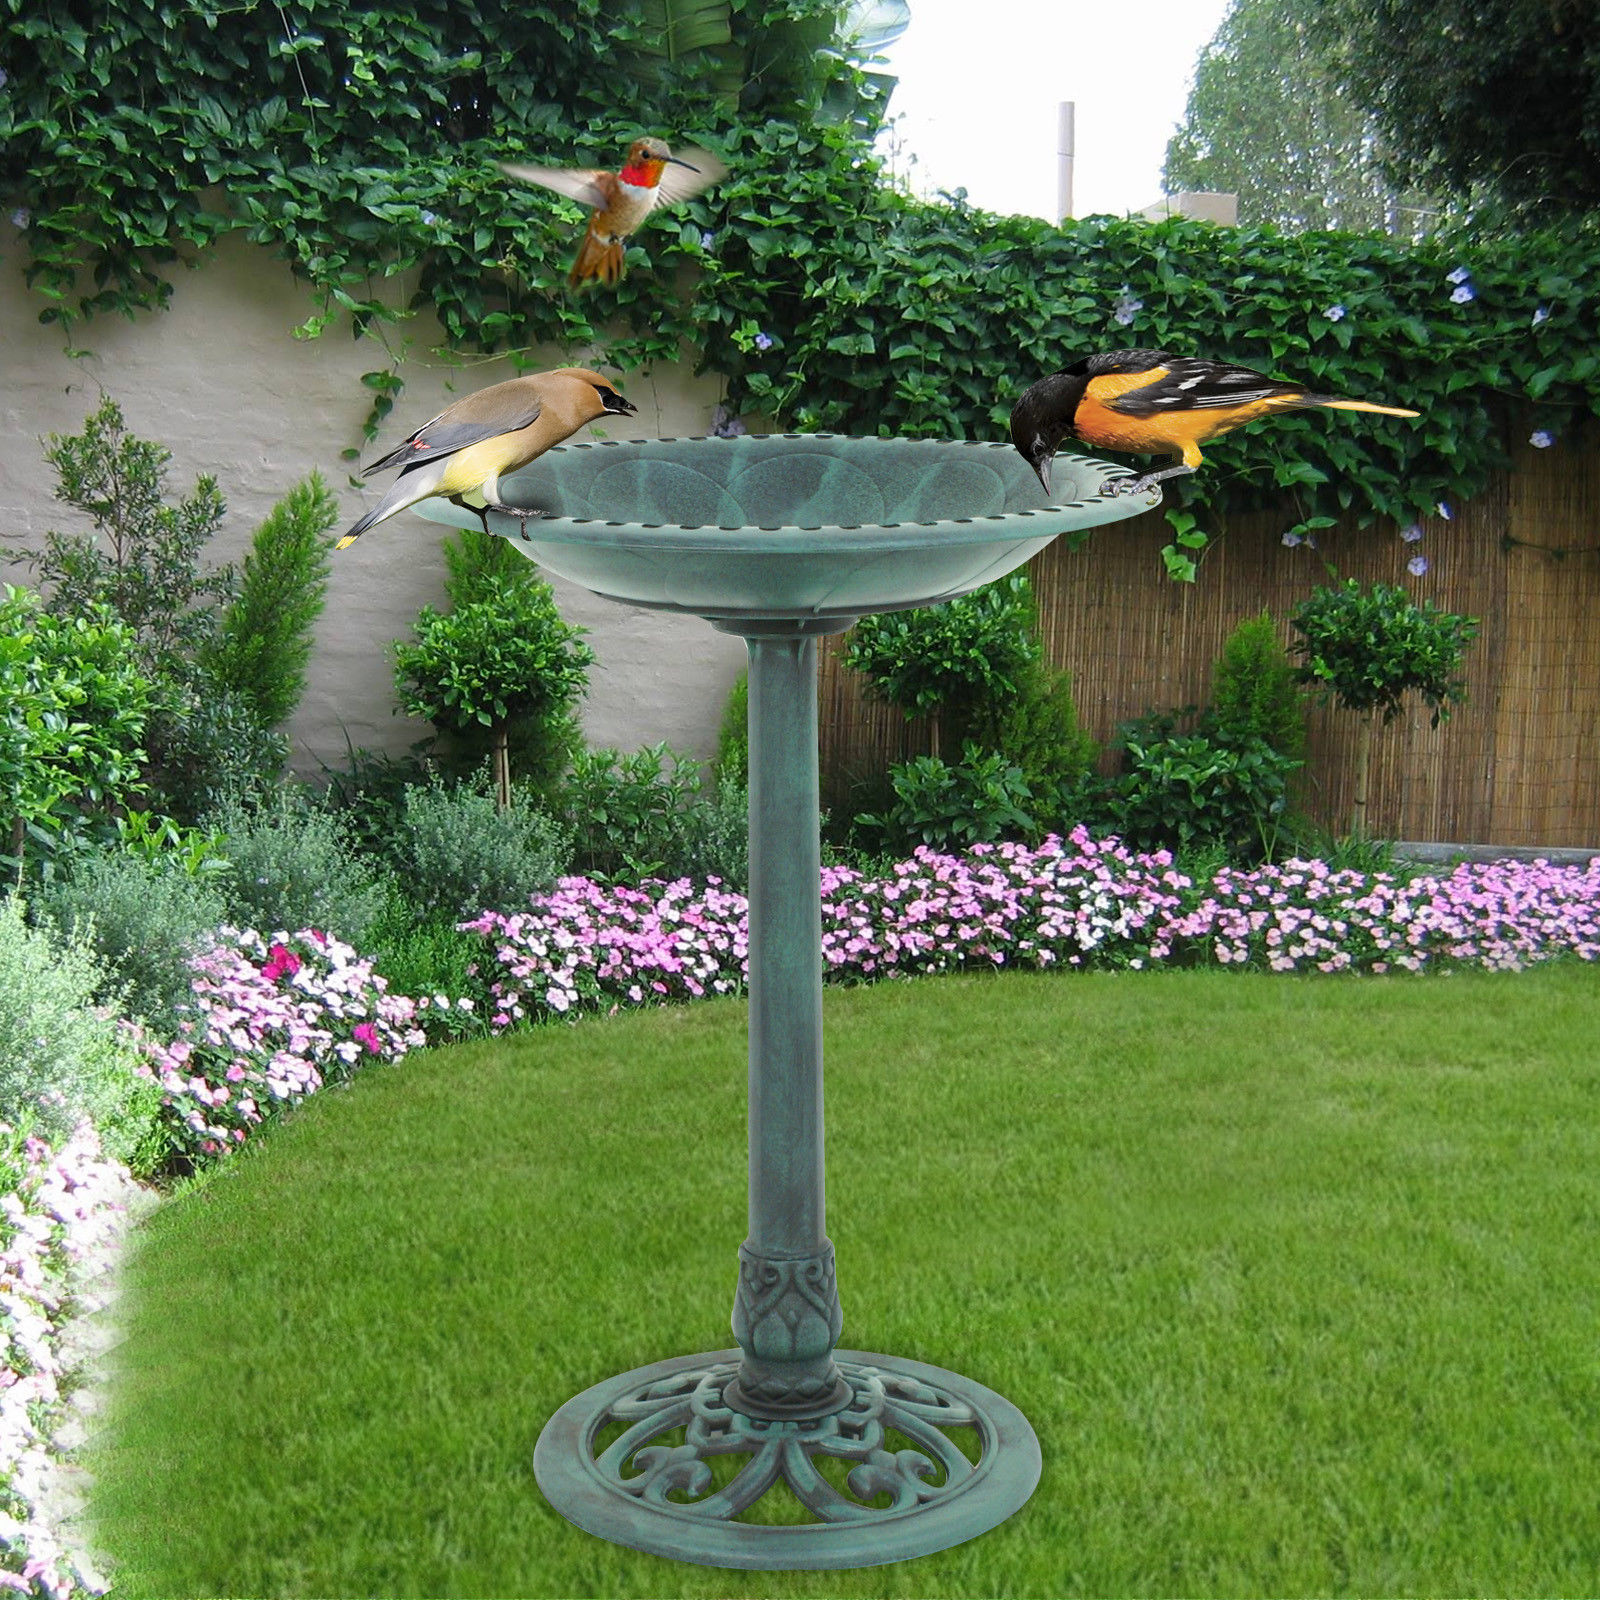 Zeny Birdbath Height Pedestal Bird Bath Outdoor Garden Decor Vintage Yard Art--Verdigris